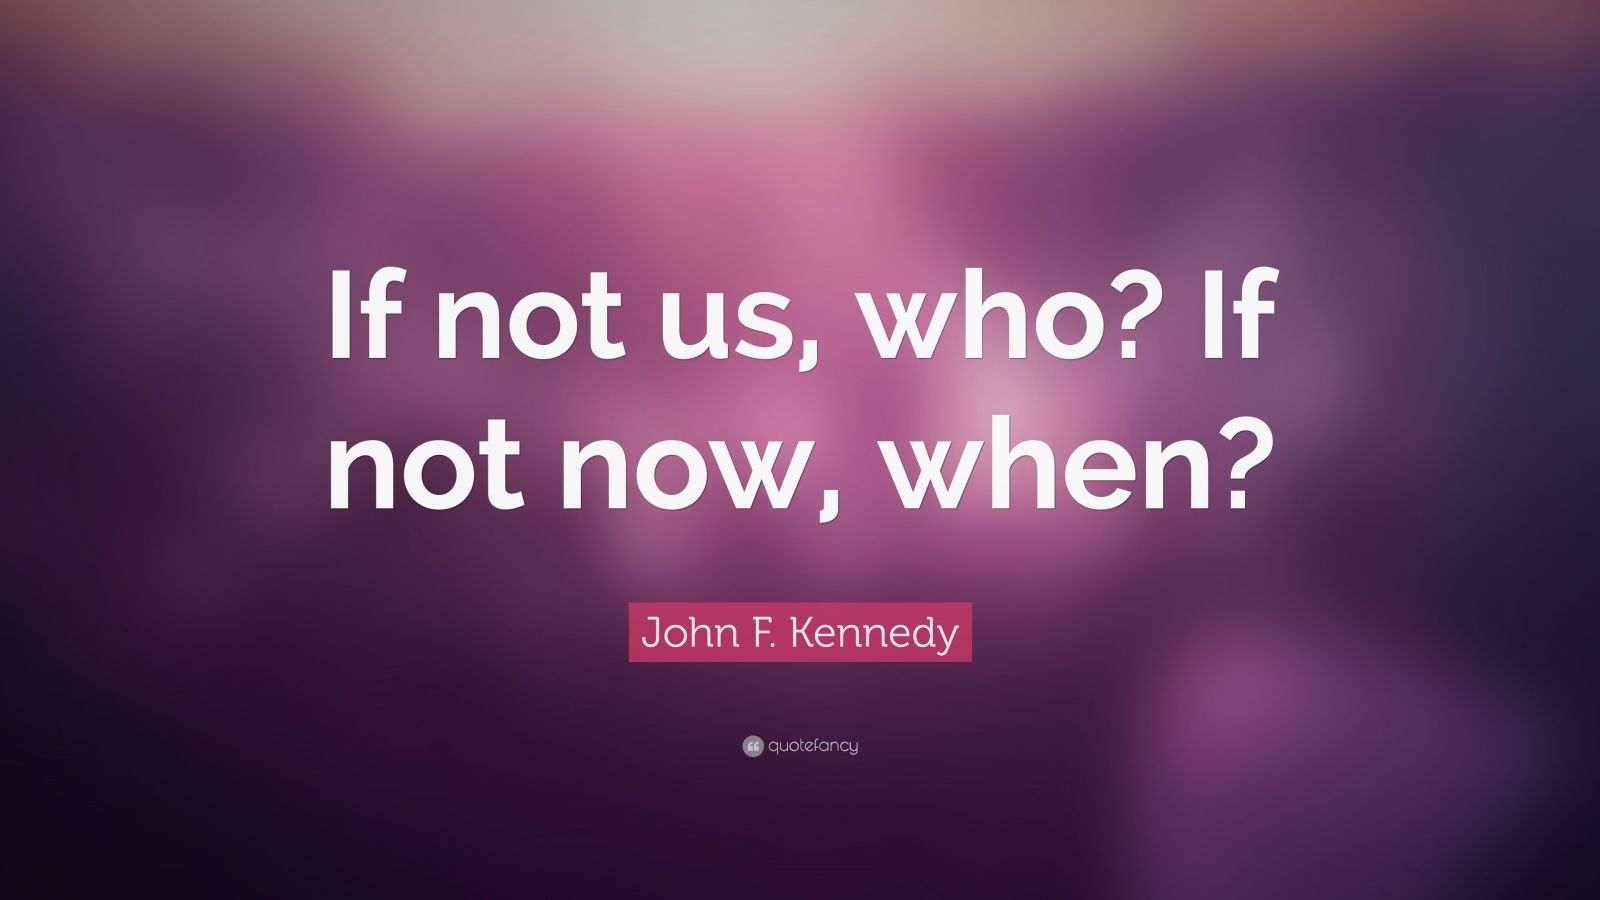 Kennedy Quote Wallpaper John F Kennedy Quote If Not Us Who If Not Now When